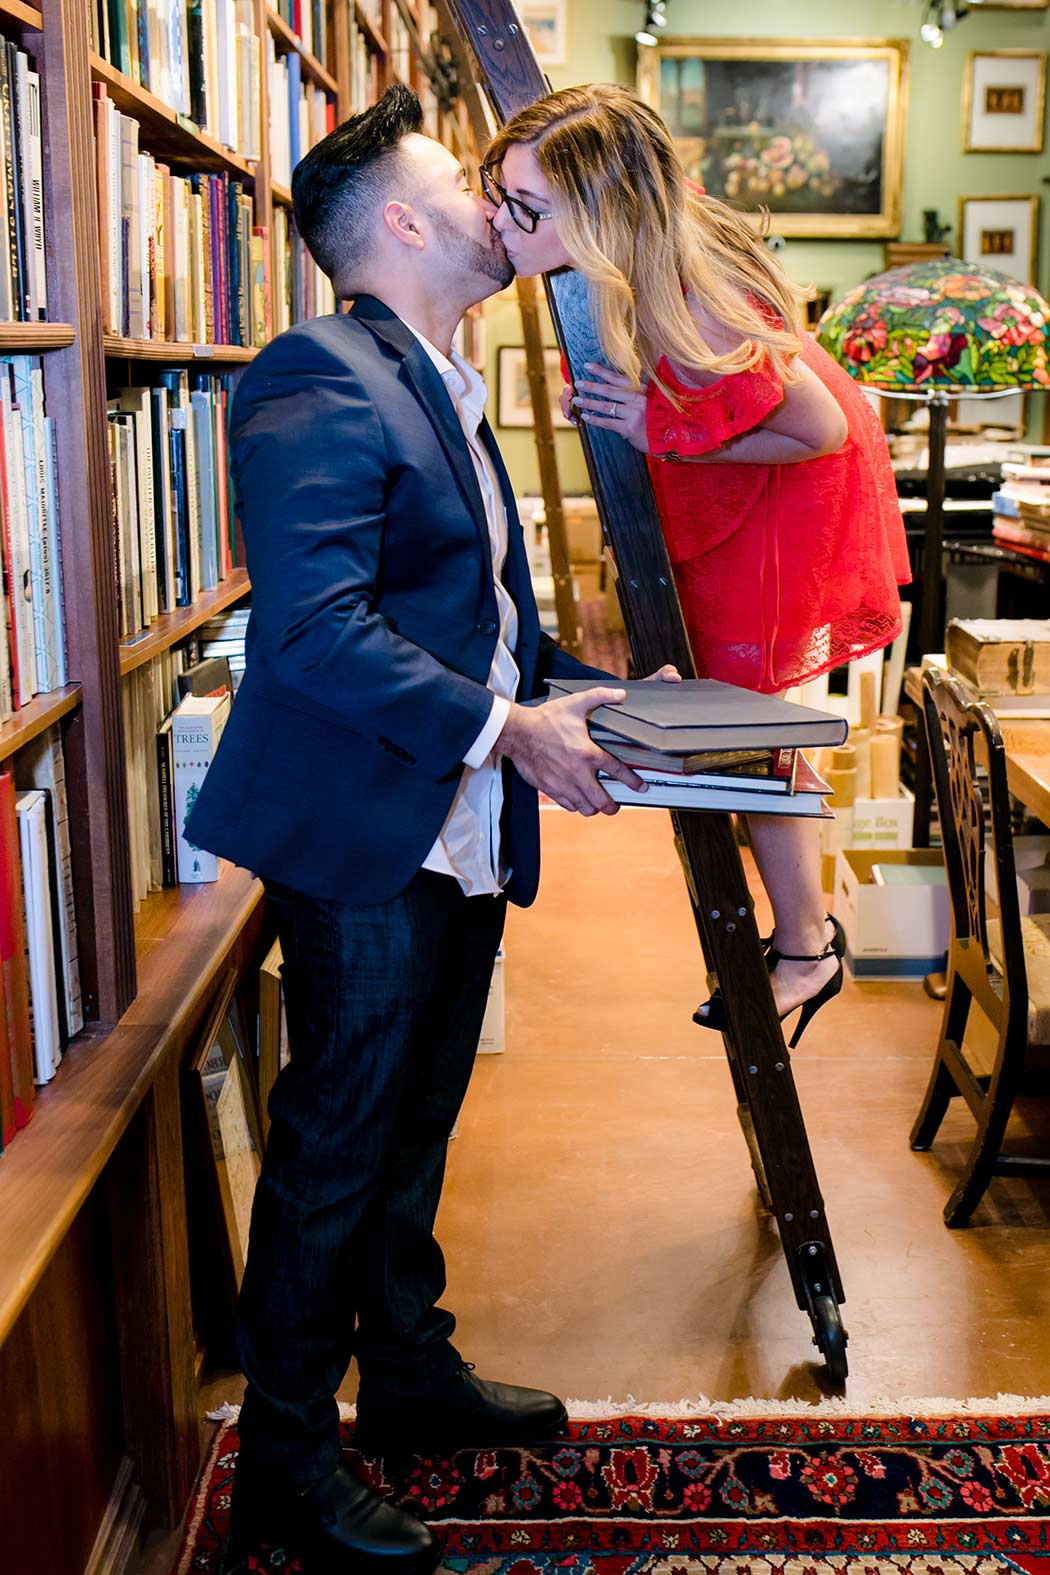 couple kiss in book store for their engagement session on library ladder